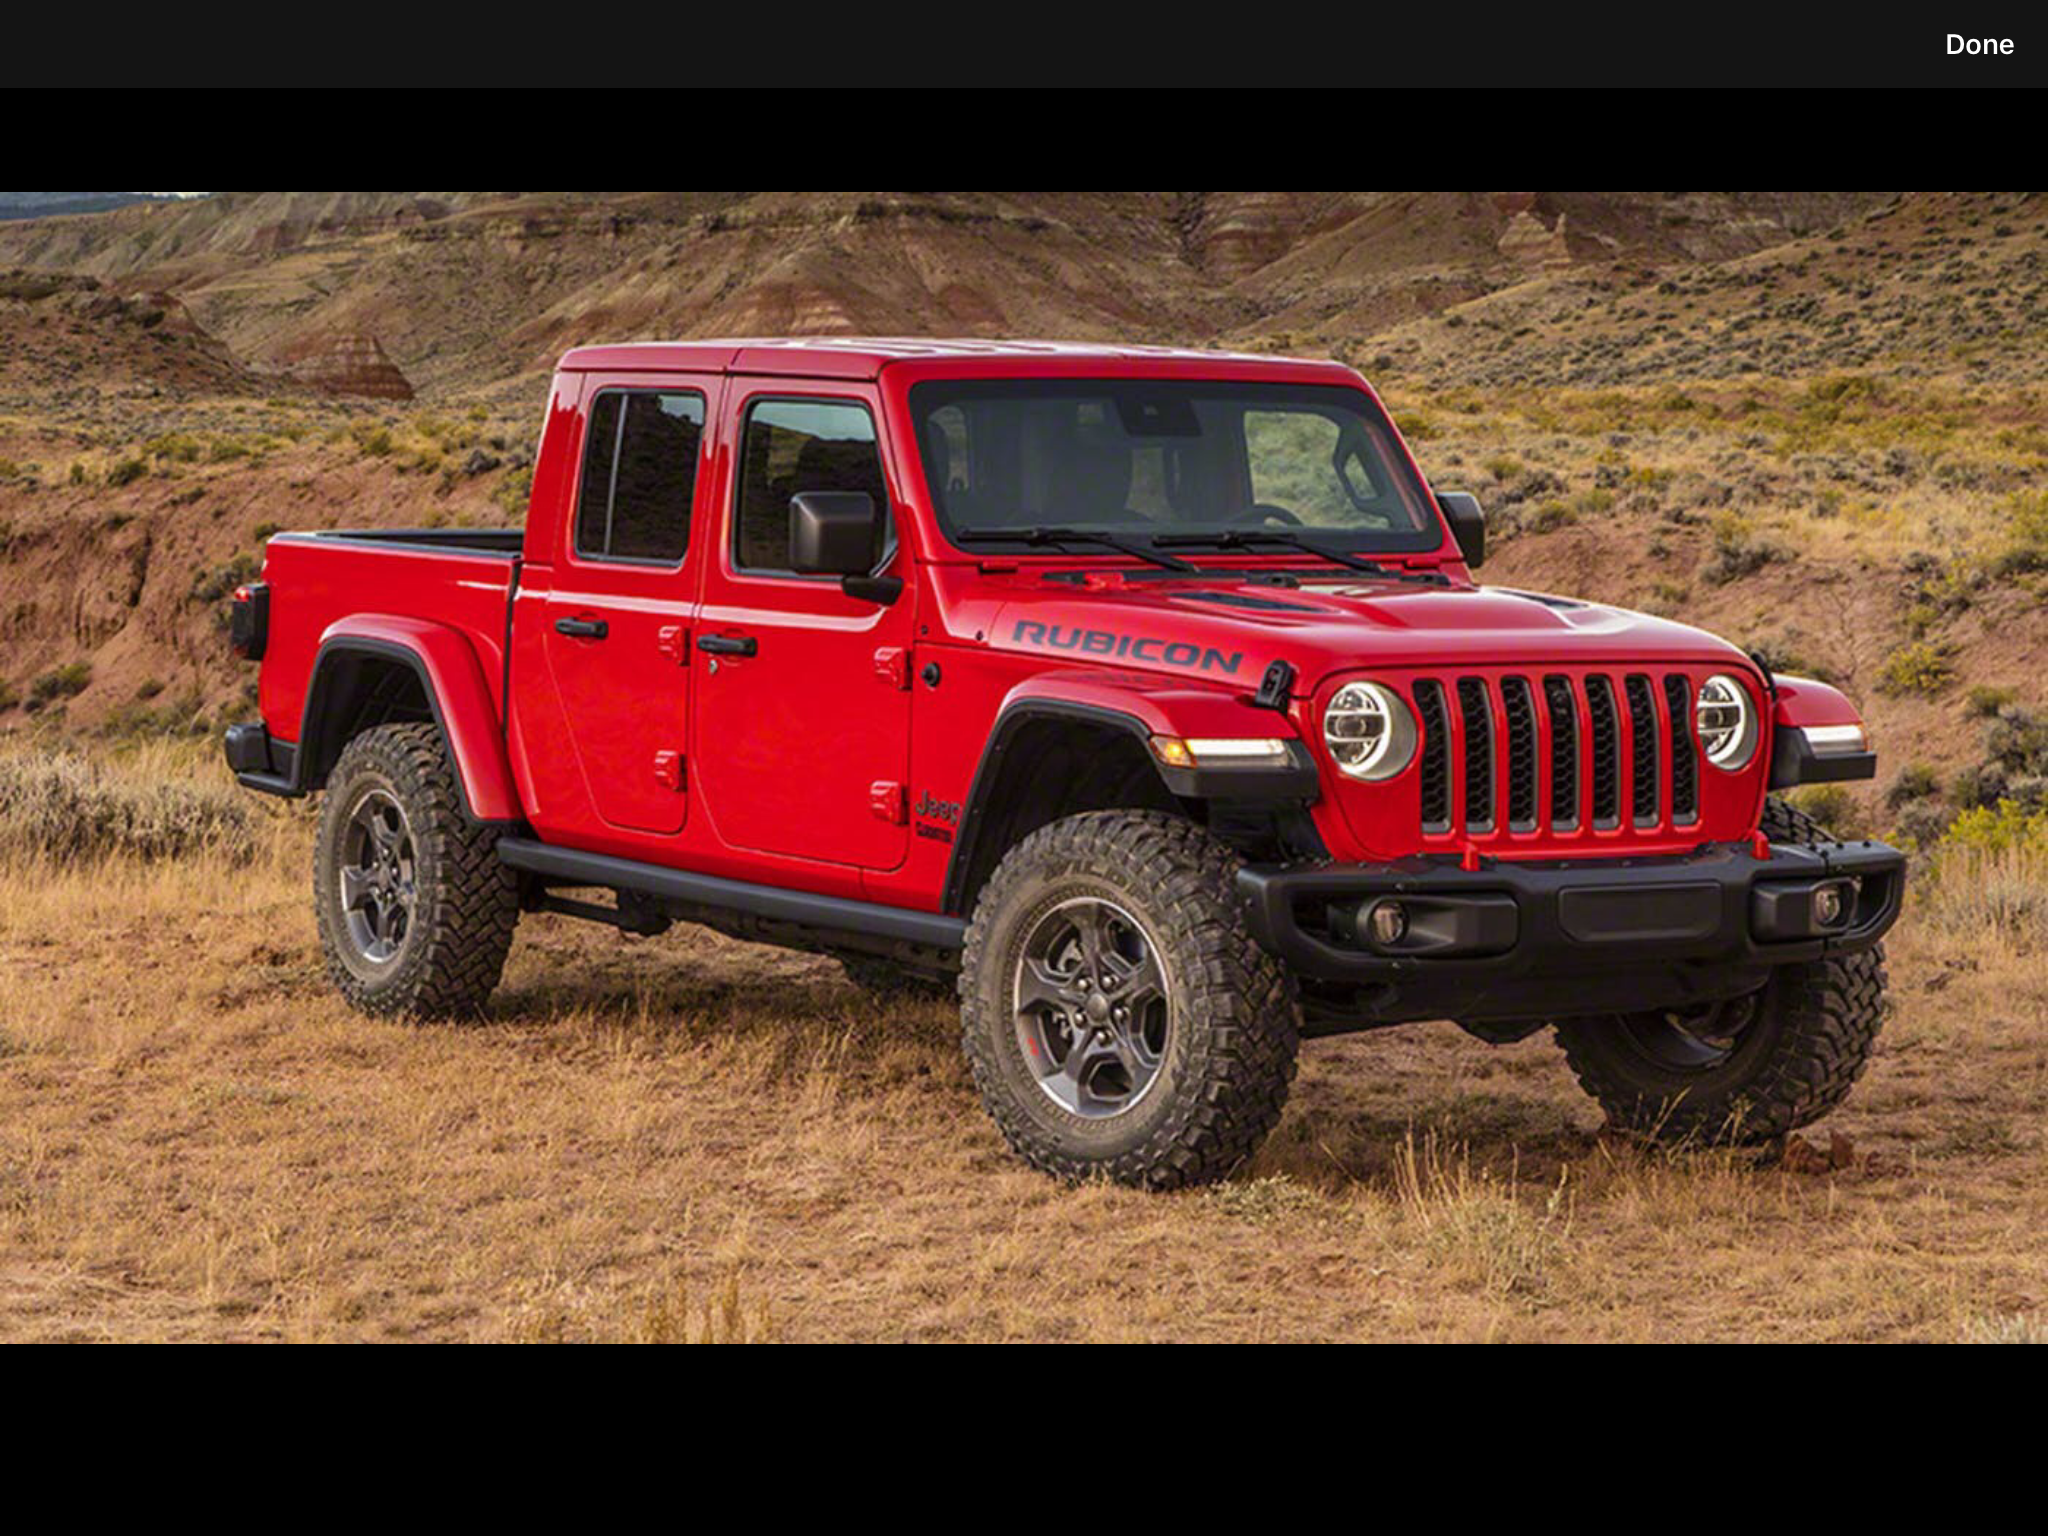 Pin by Bill Schriever on Jeep Jeep gladiator, Jeep